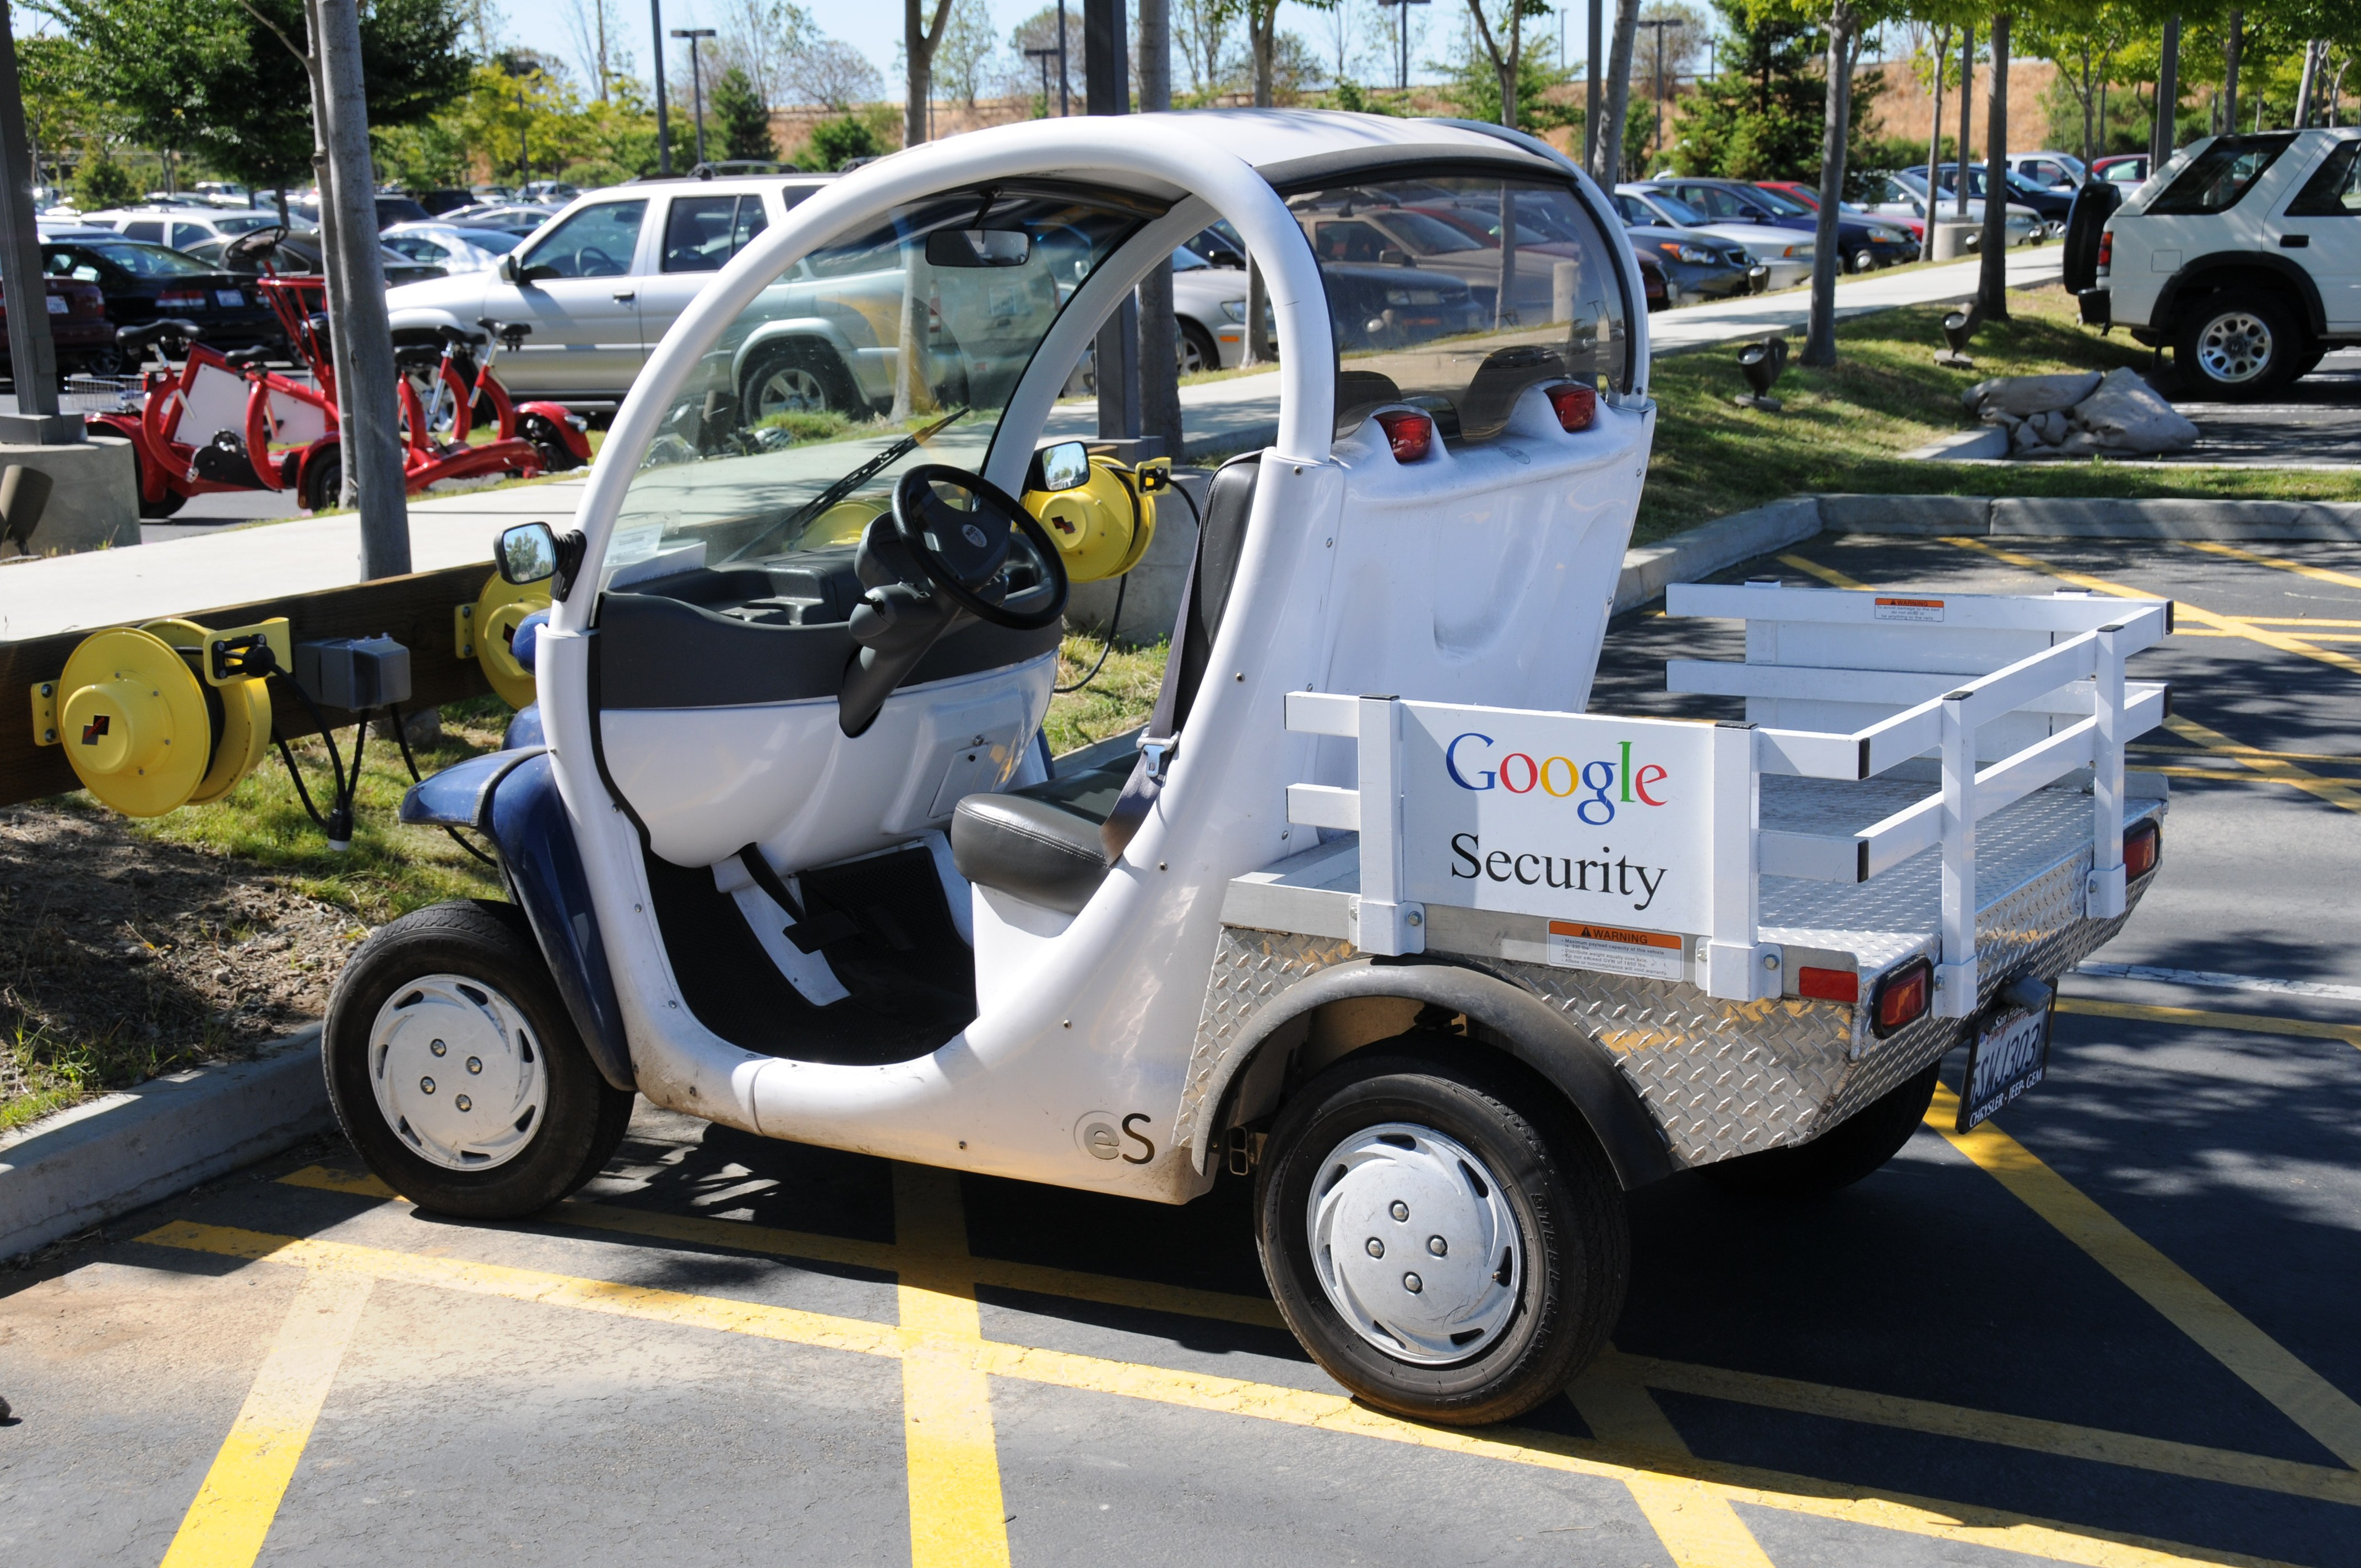 Neighborhood Electric Vehicle - The complete information and